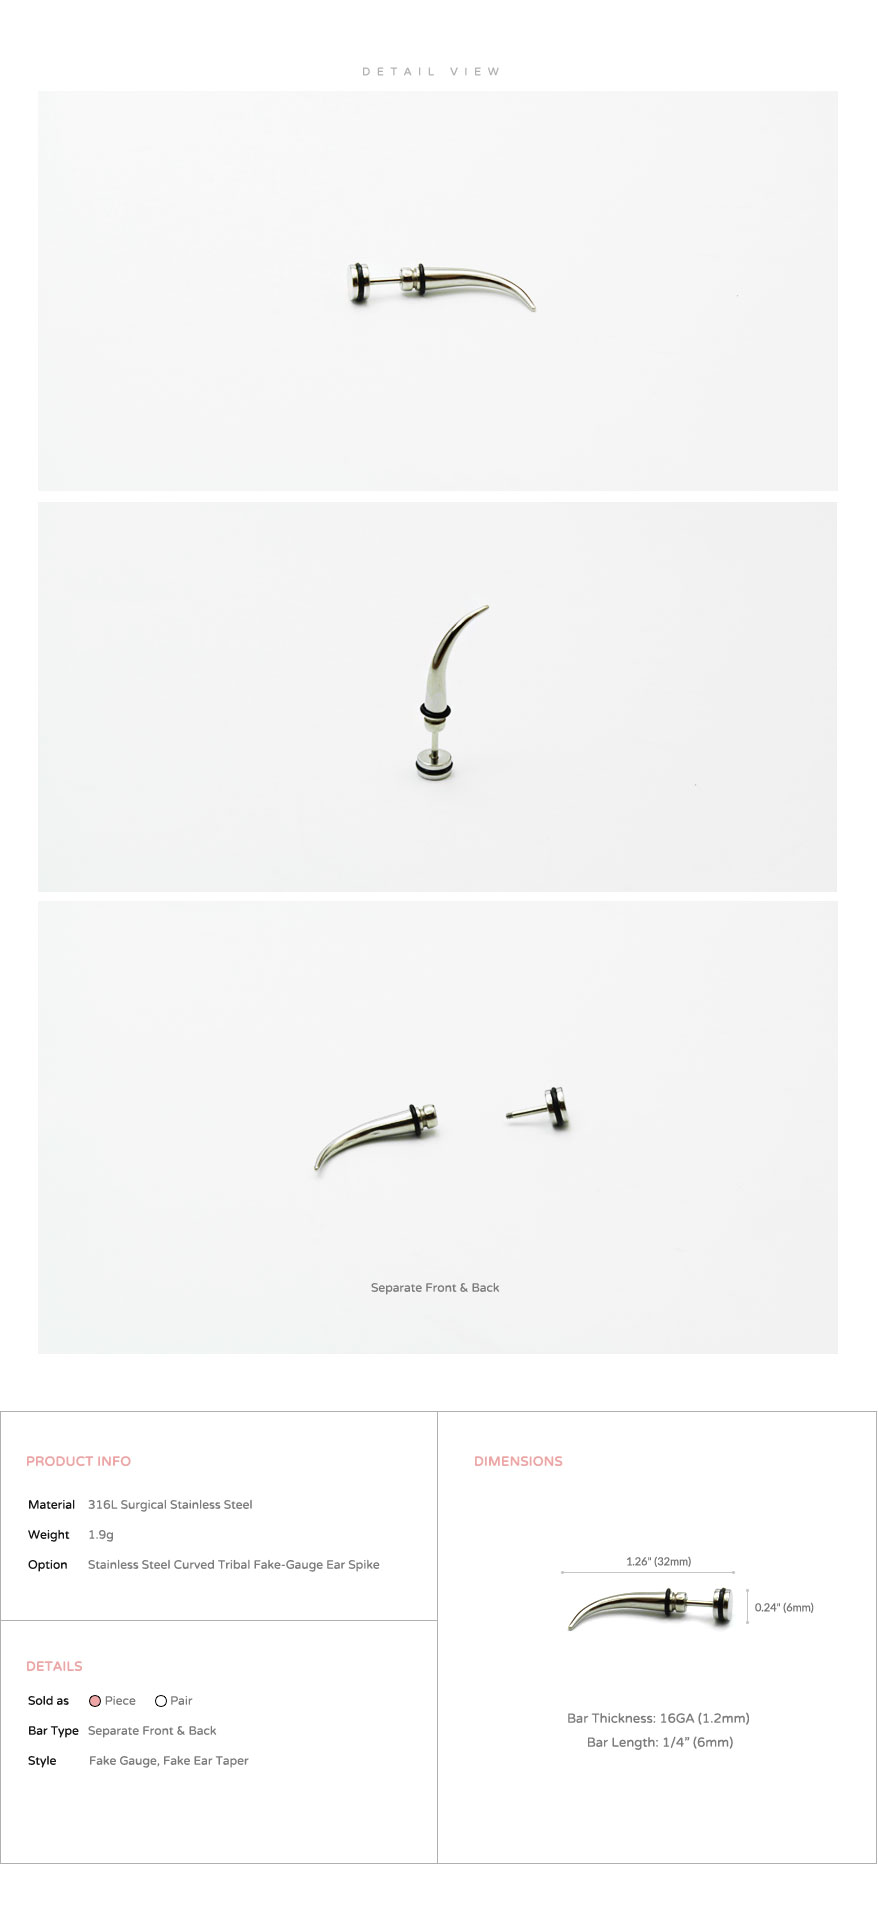 ear_studs_piercing_Cartilage_earrings_16g_316l_Surgical_Stainless_Steel_korean_asian_style_jewelry_curved_spike_fake_gauge_taper_4